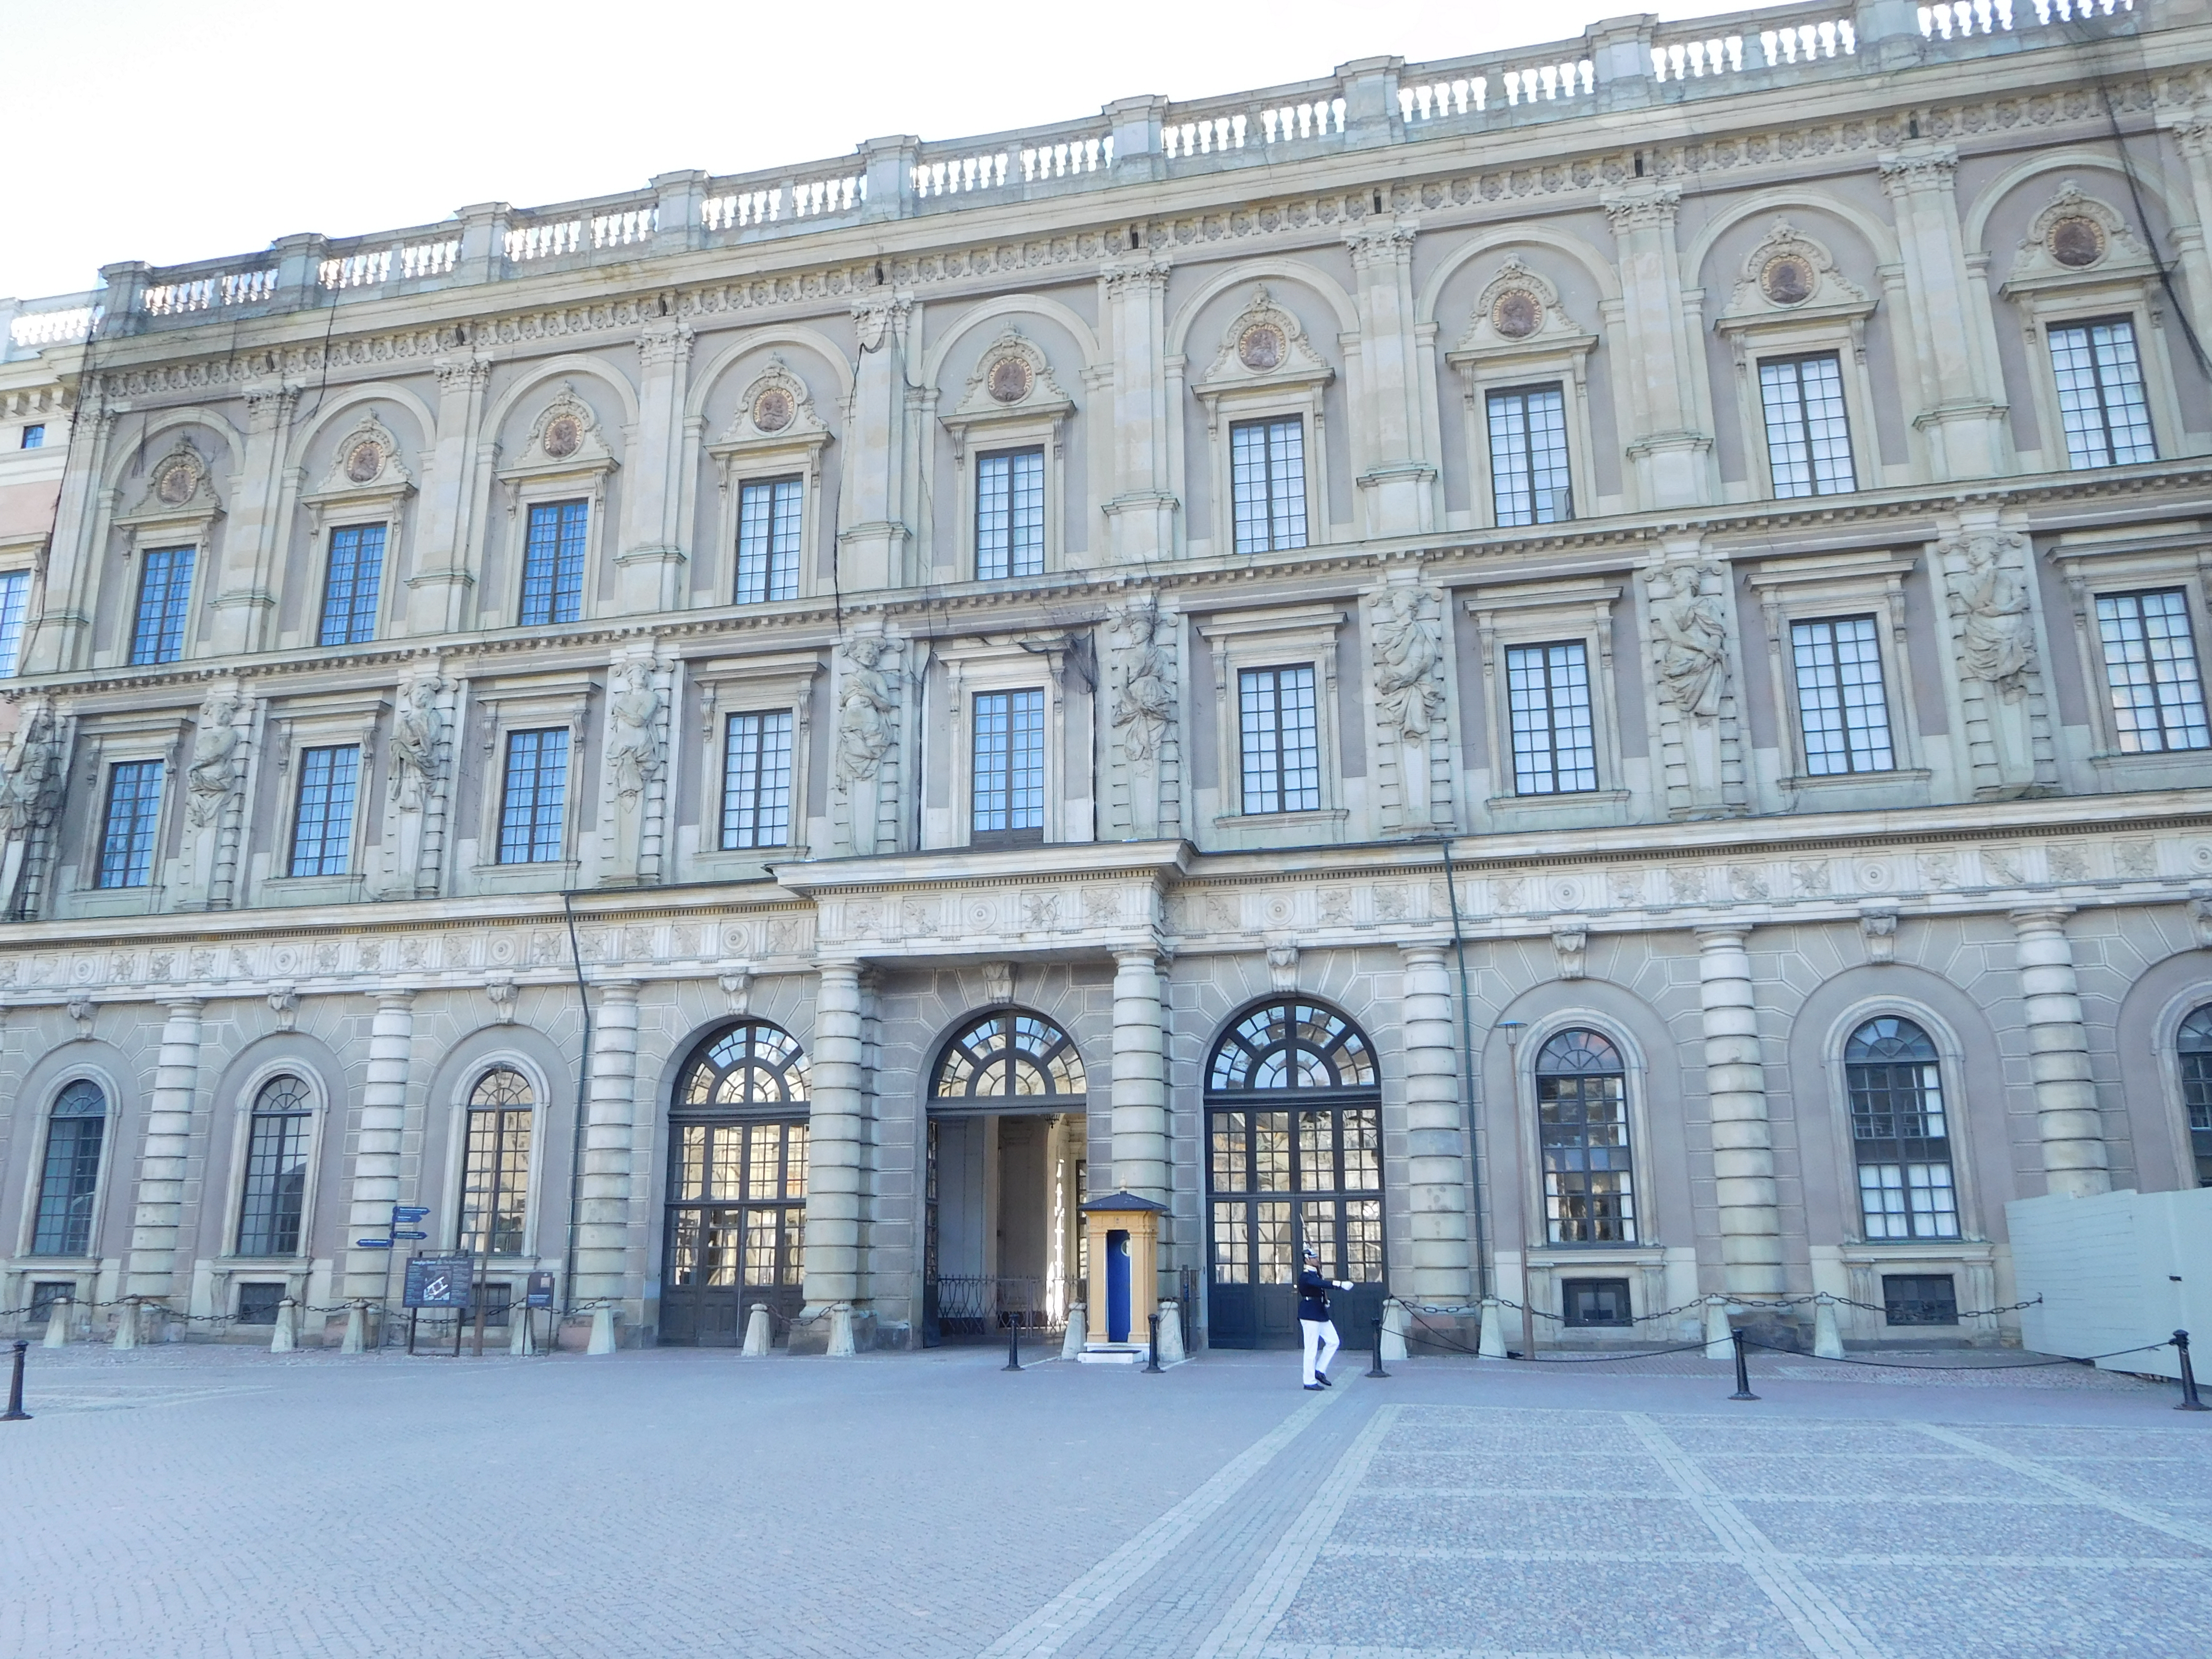 The first stop was stockholm sweden where i visited the royal palace the official residence of king carl xvi gustaf and queen sylvia